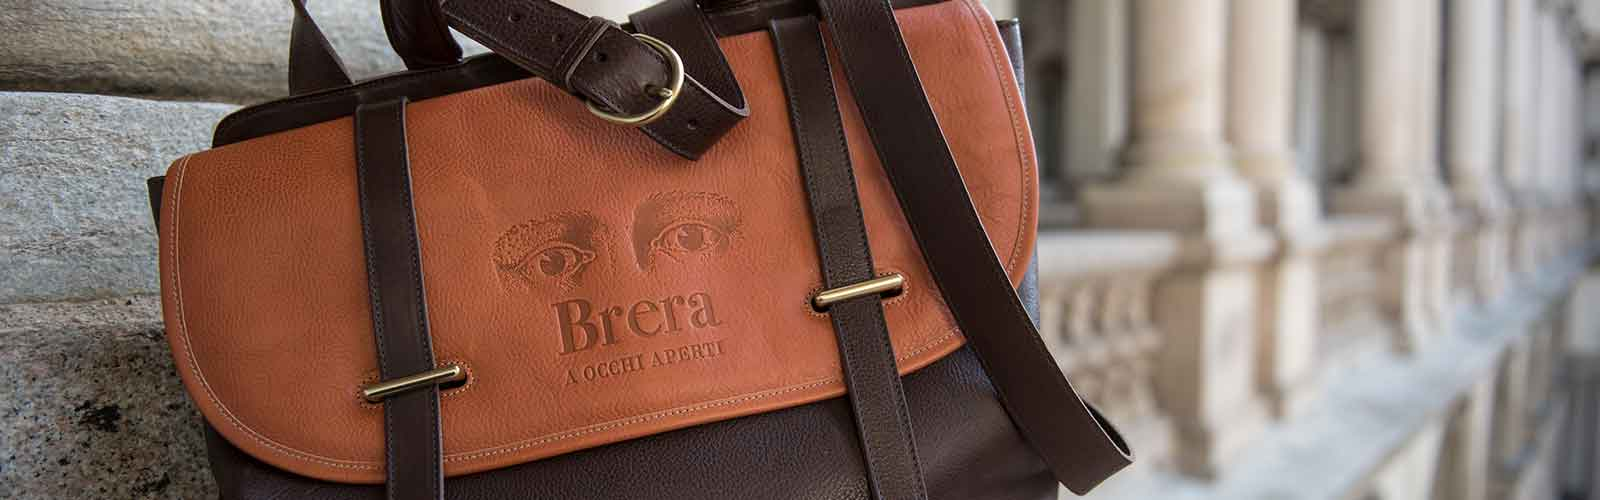 Brera by your way!